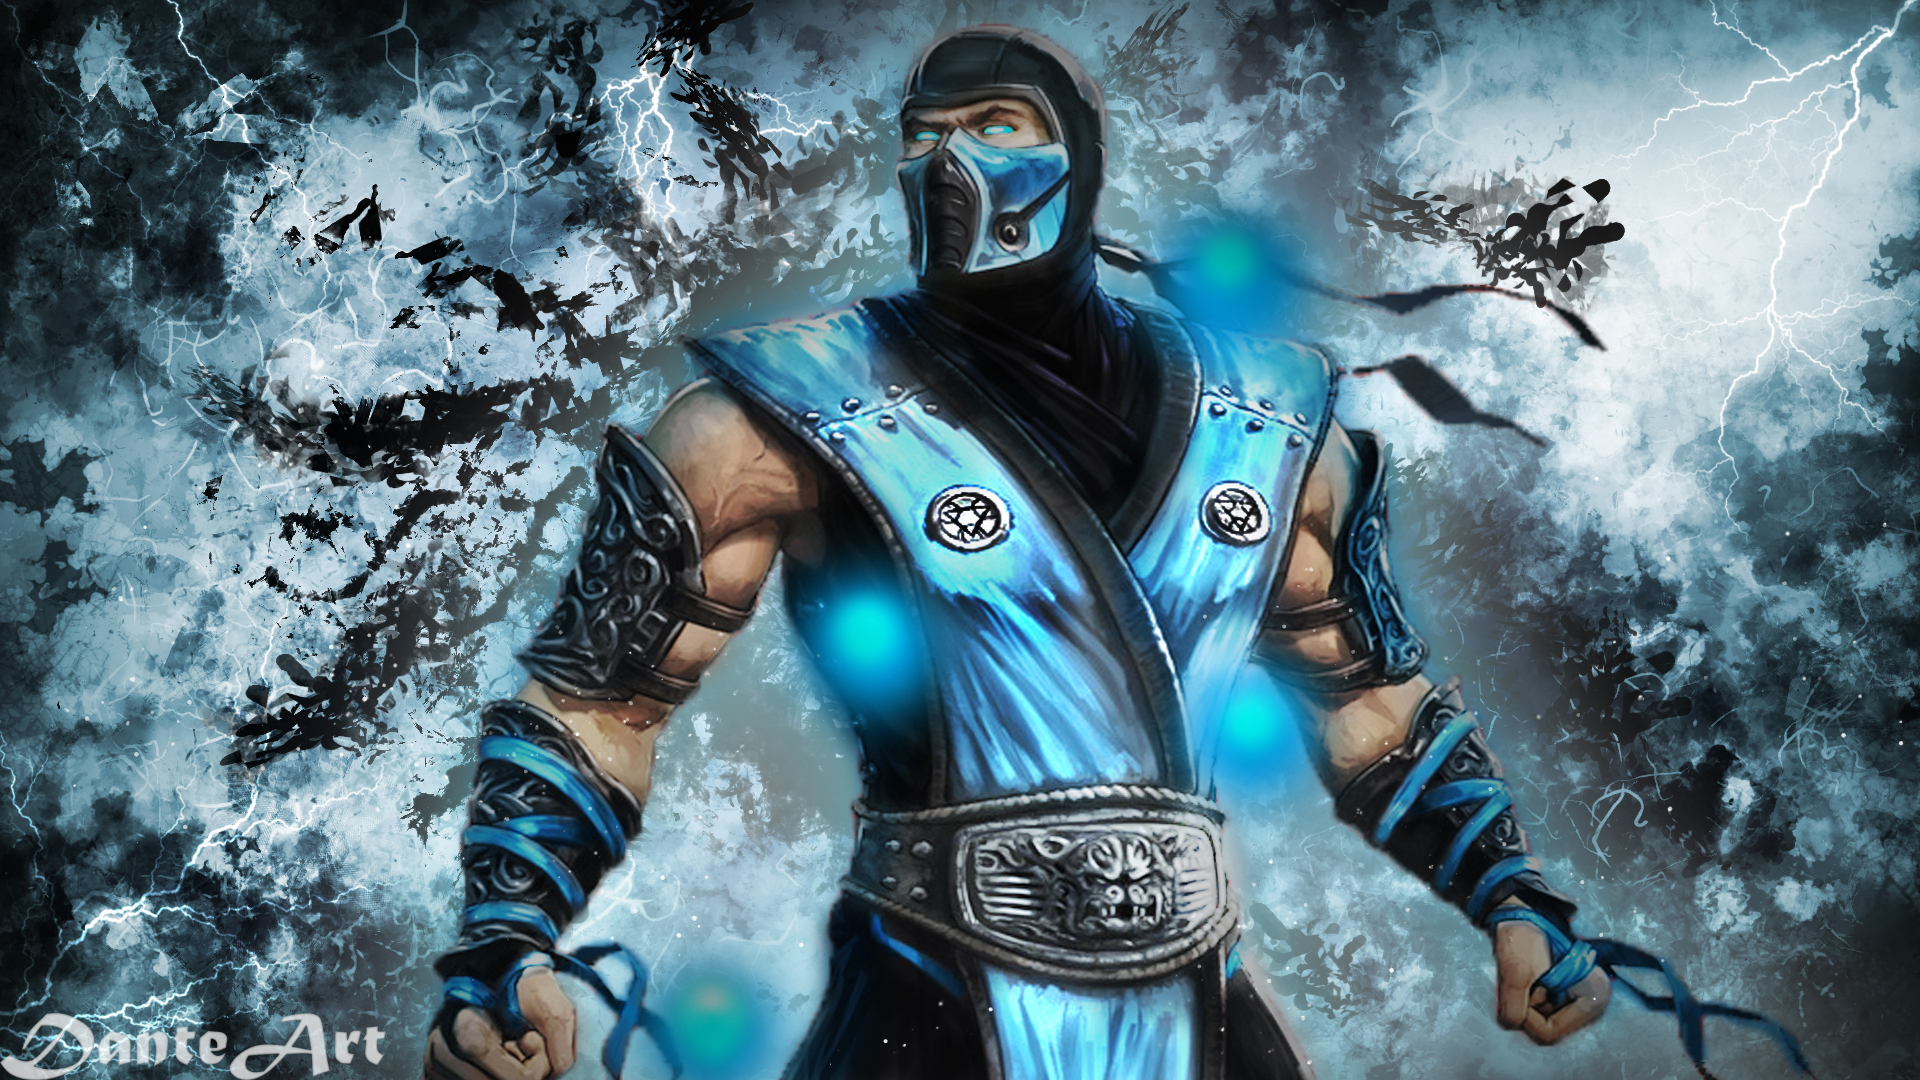 69 Mortal Combat Wallpaper On Wallpapersafari